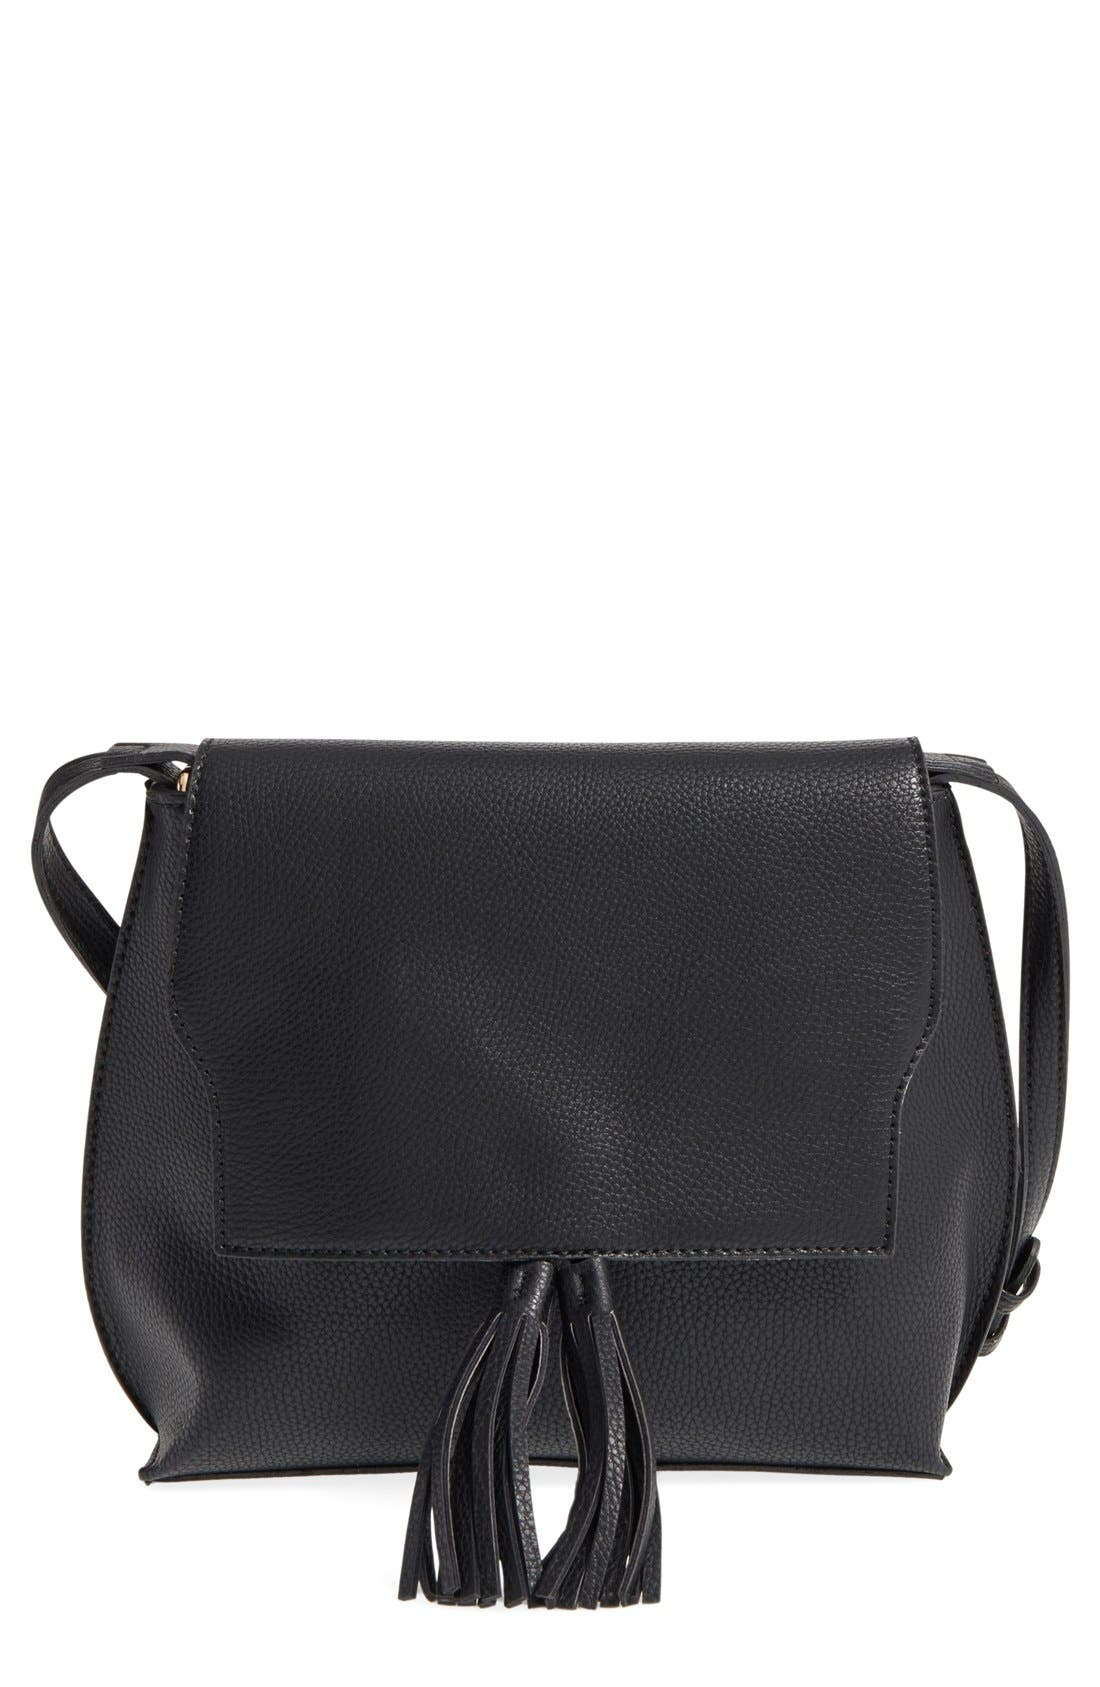 Main Image - Sole Society Tassel Faux Leather Crossbody Bag